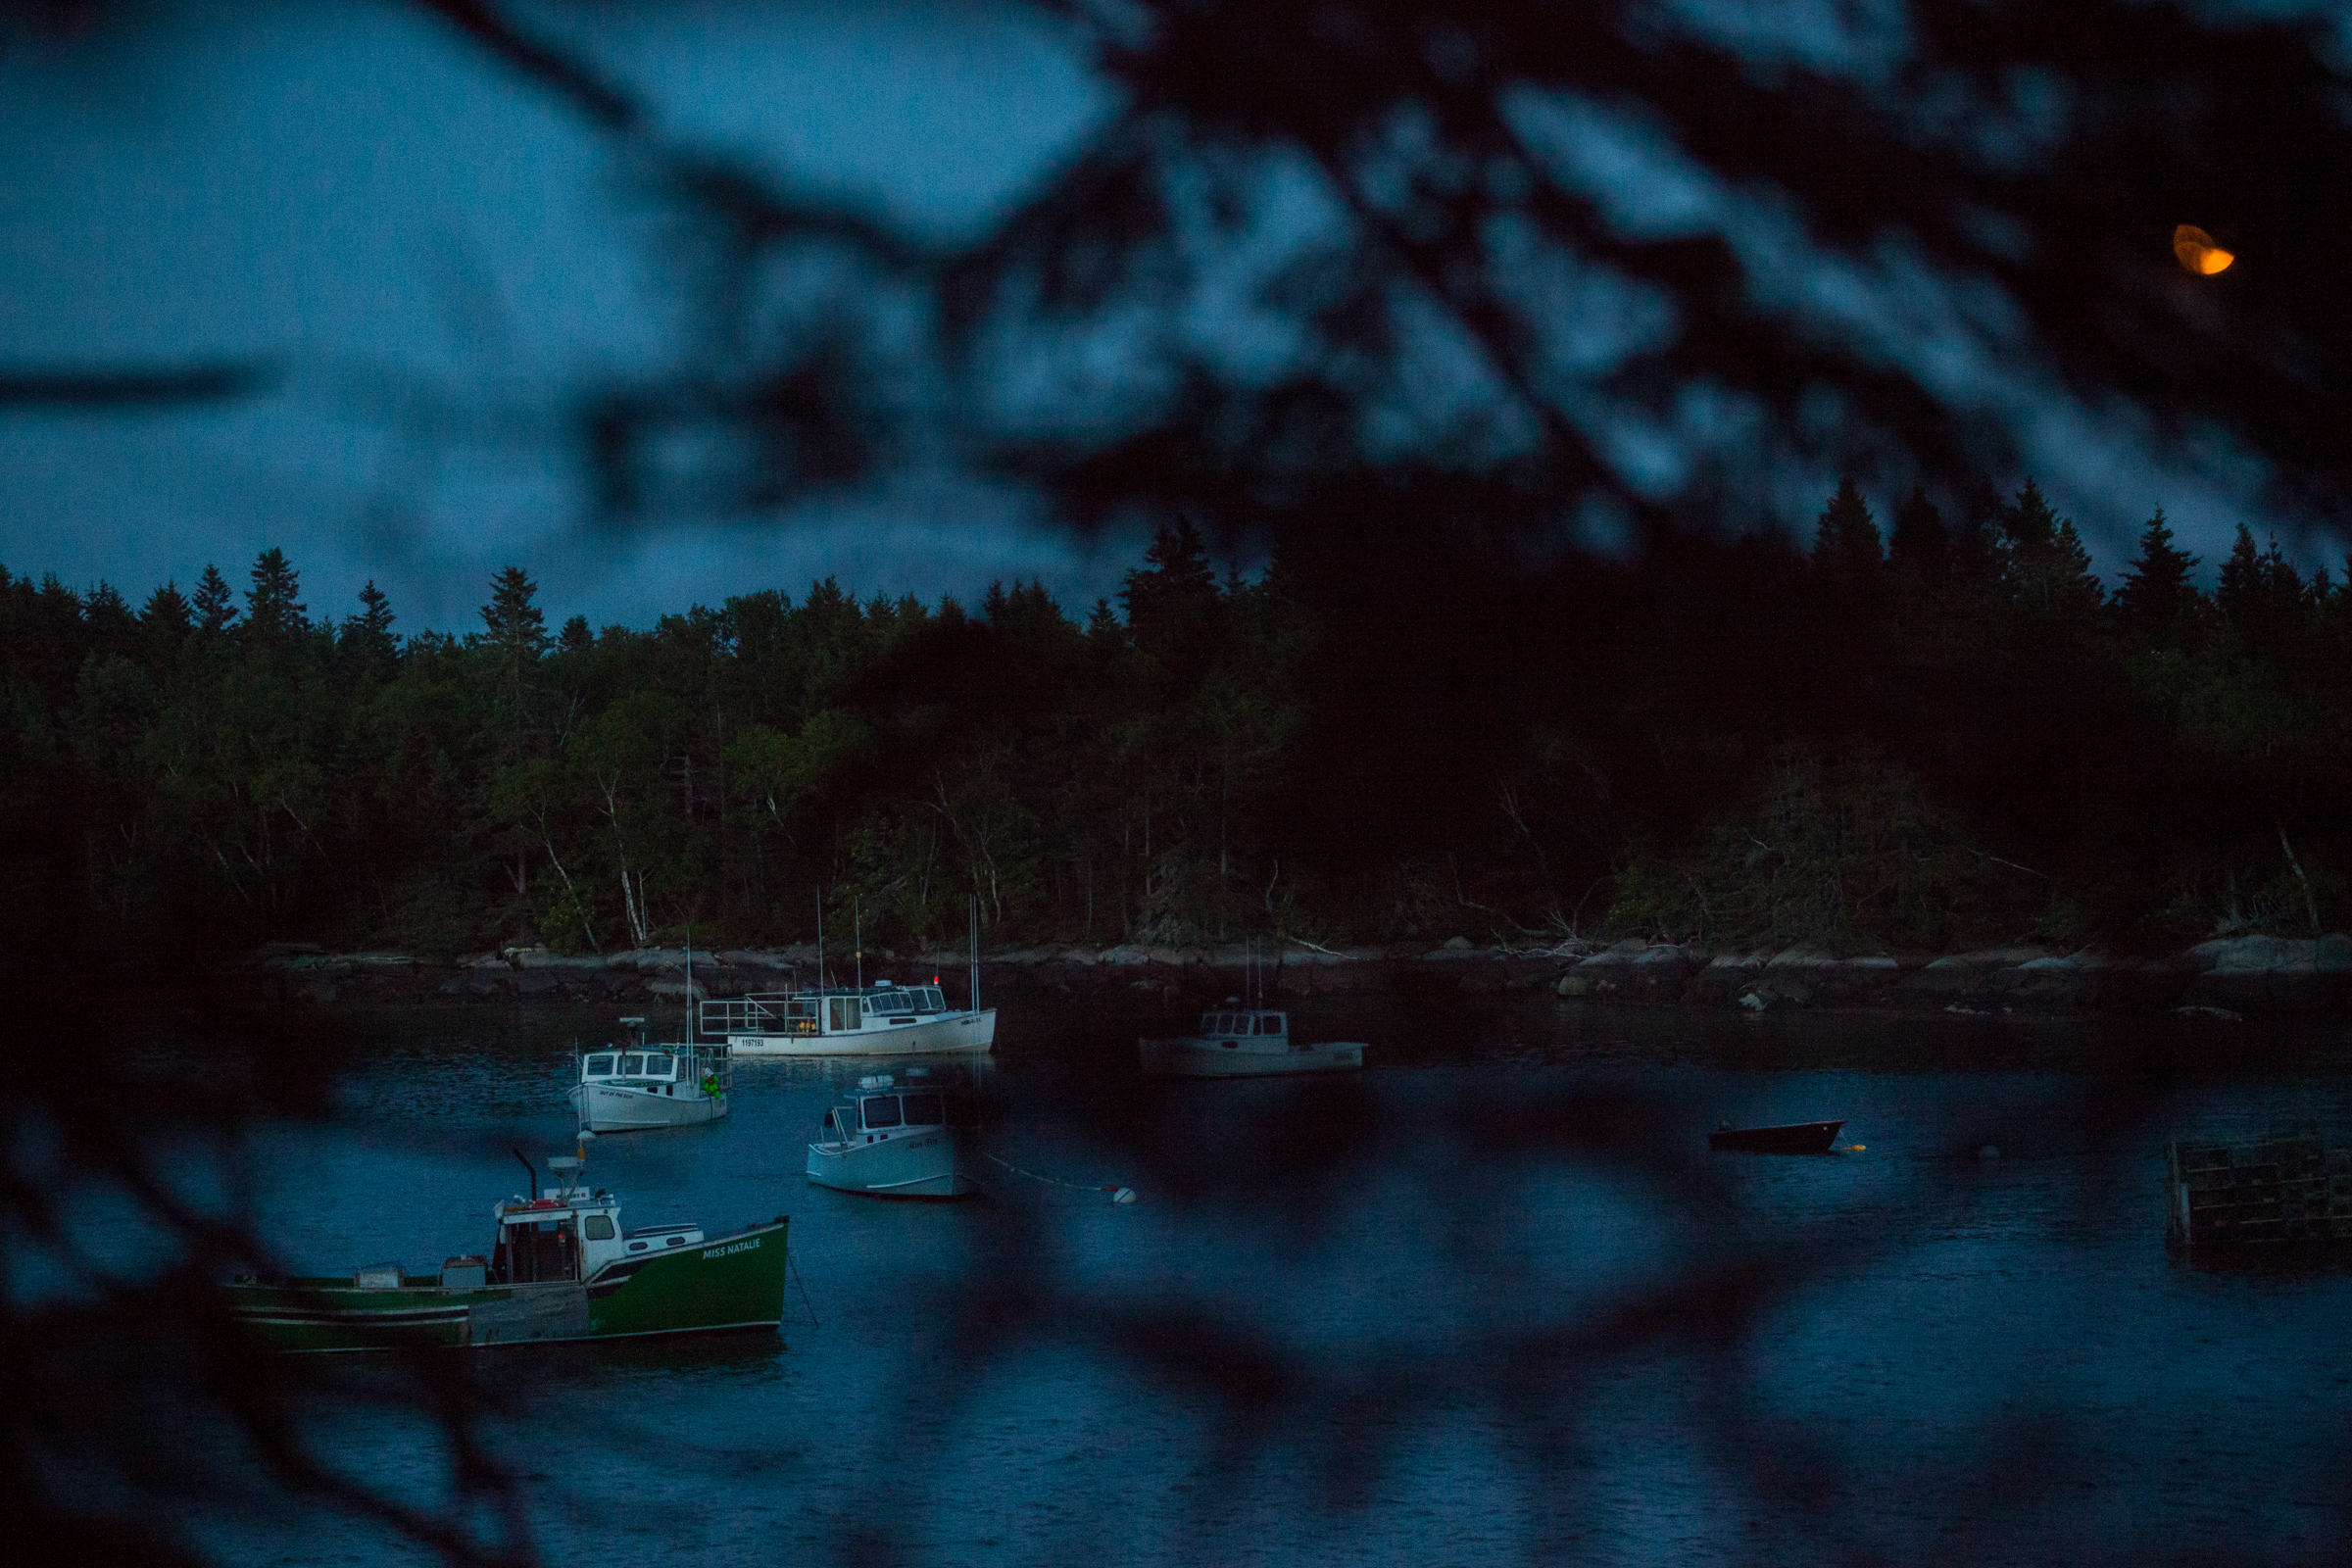 Lobster boats and a full, Strawberry moon over Jericho Bay, from the Grand Staircase. 2016